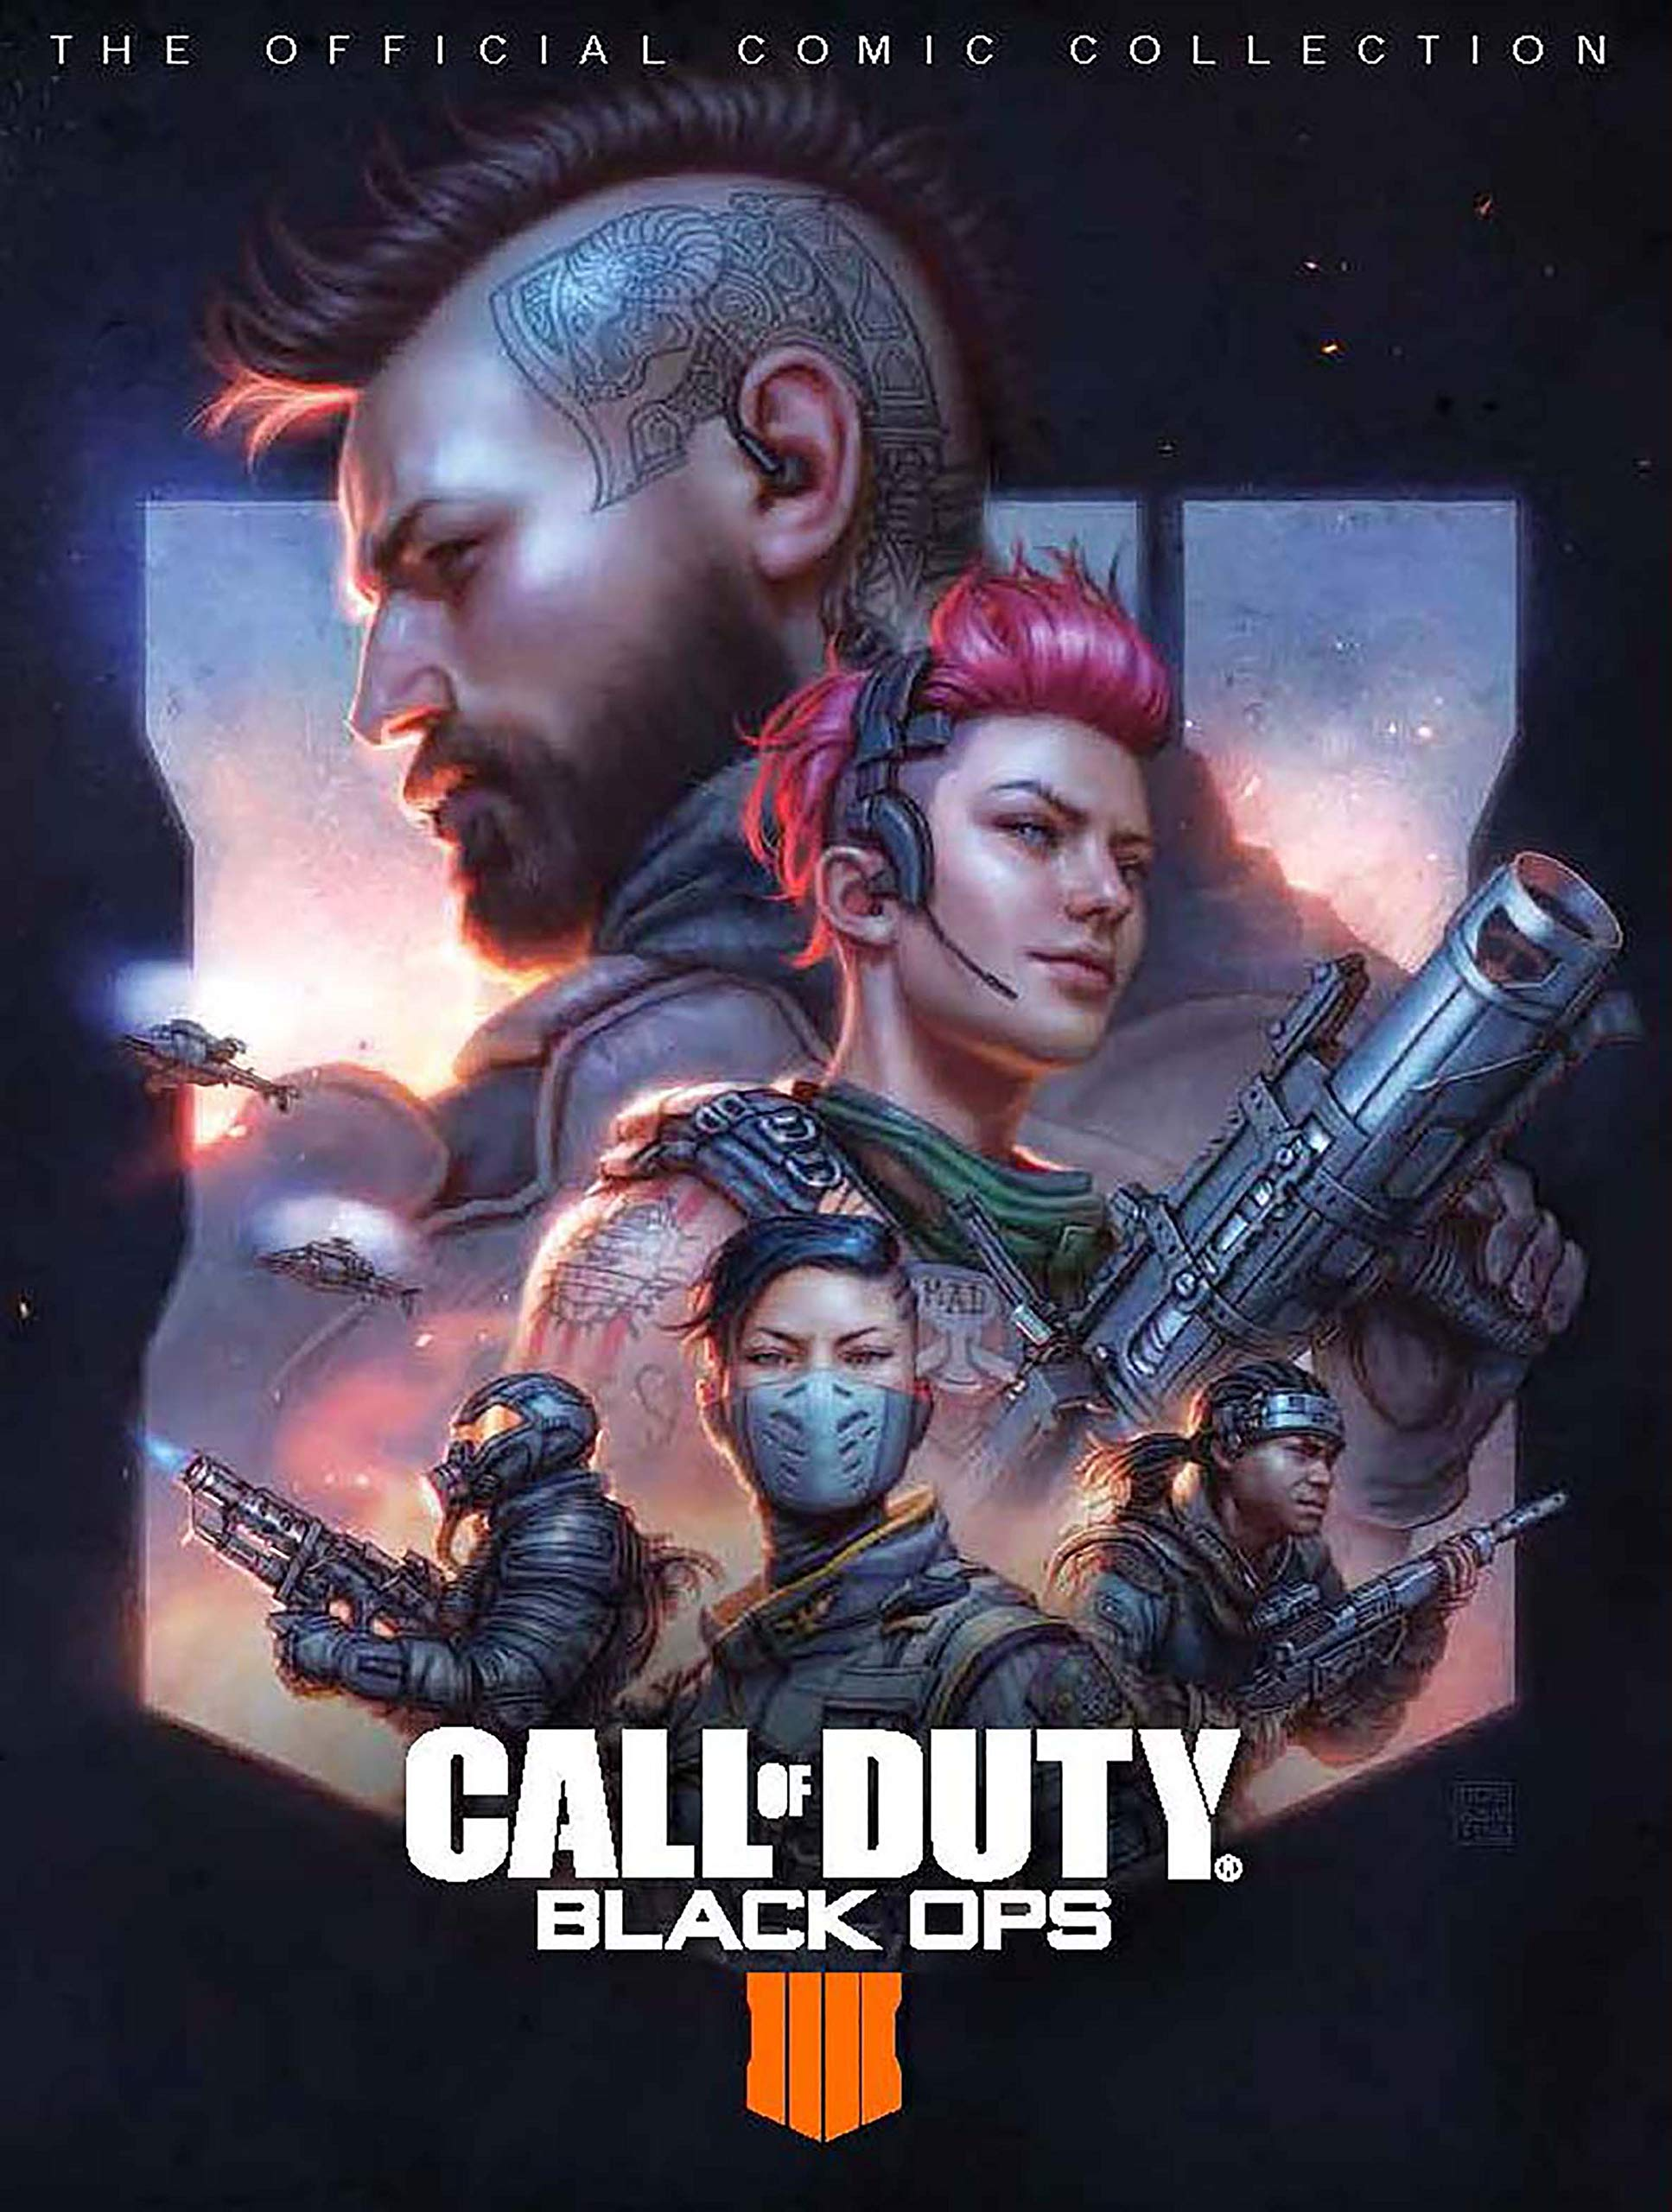 25. Call of Duty: Black Ops 4 - The Official Comic Collection